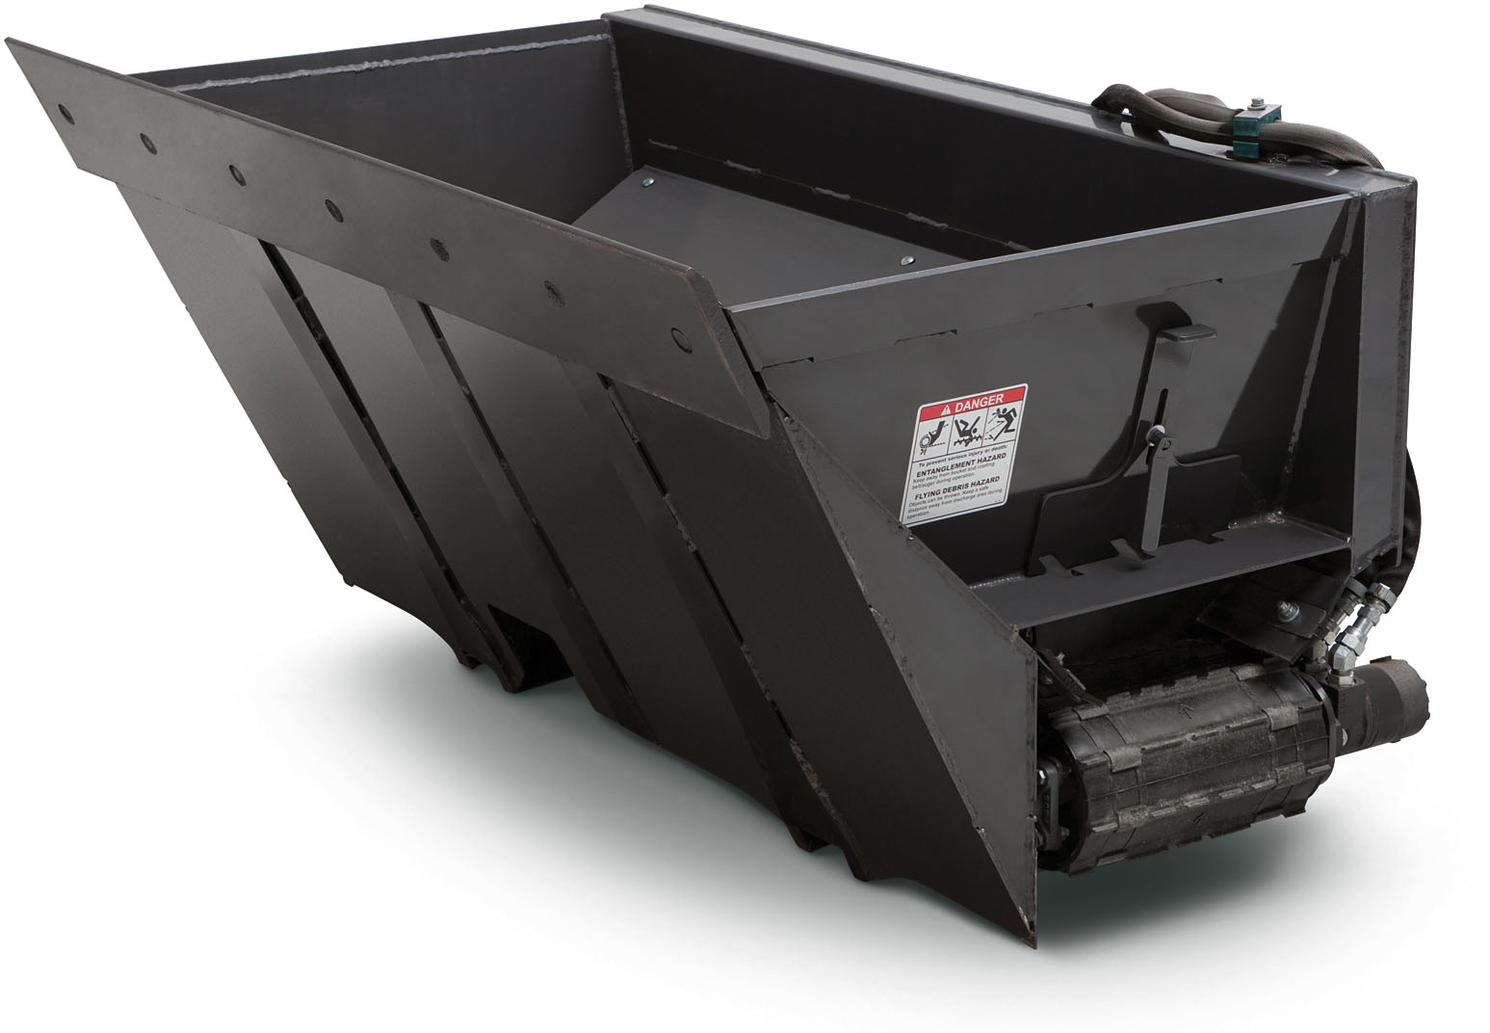 Case IH General Purpose Buckets